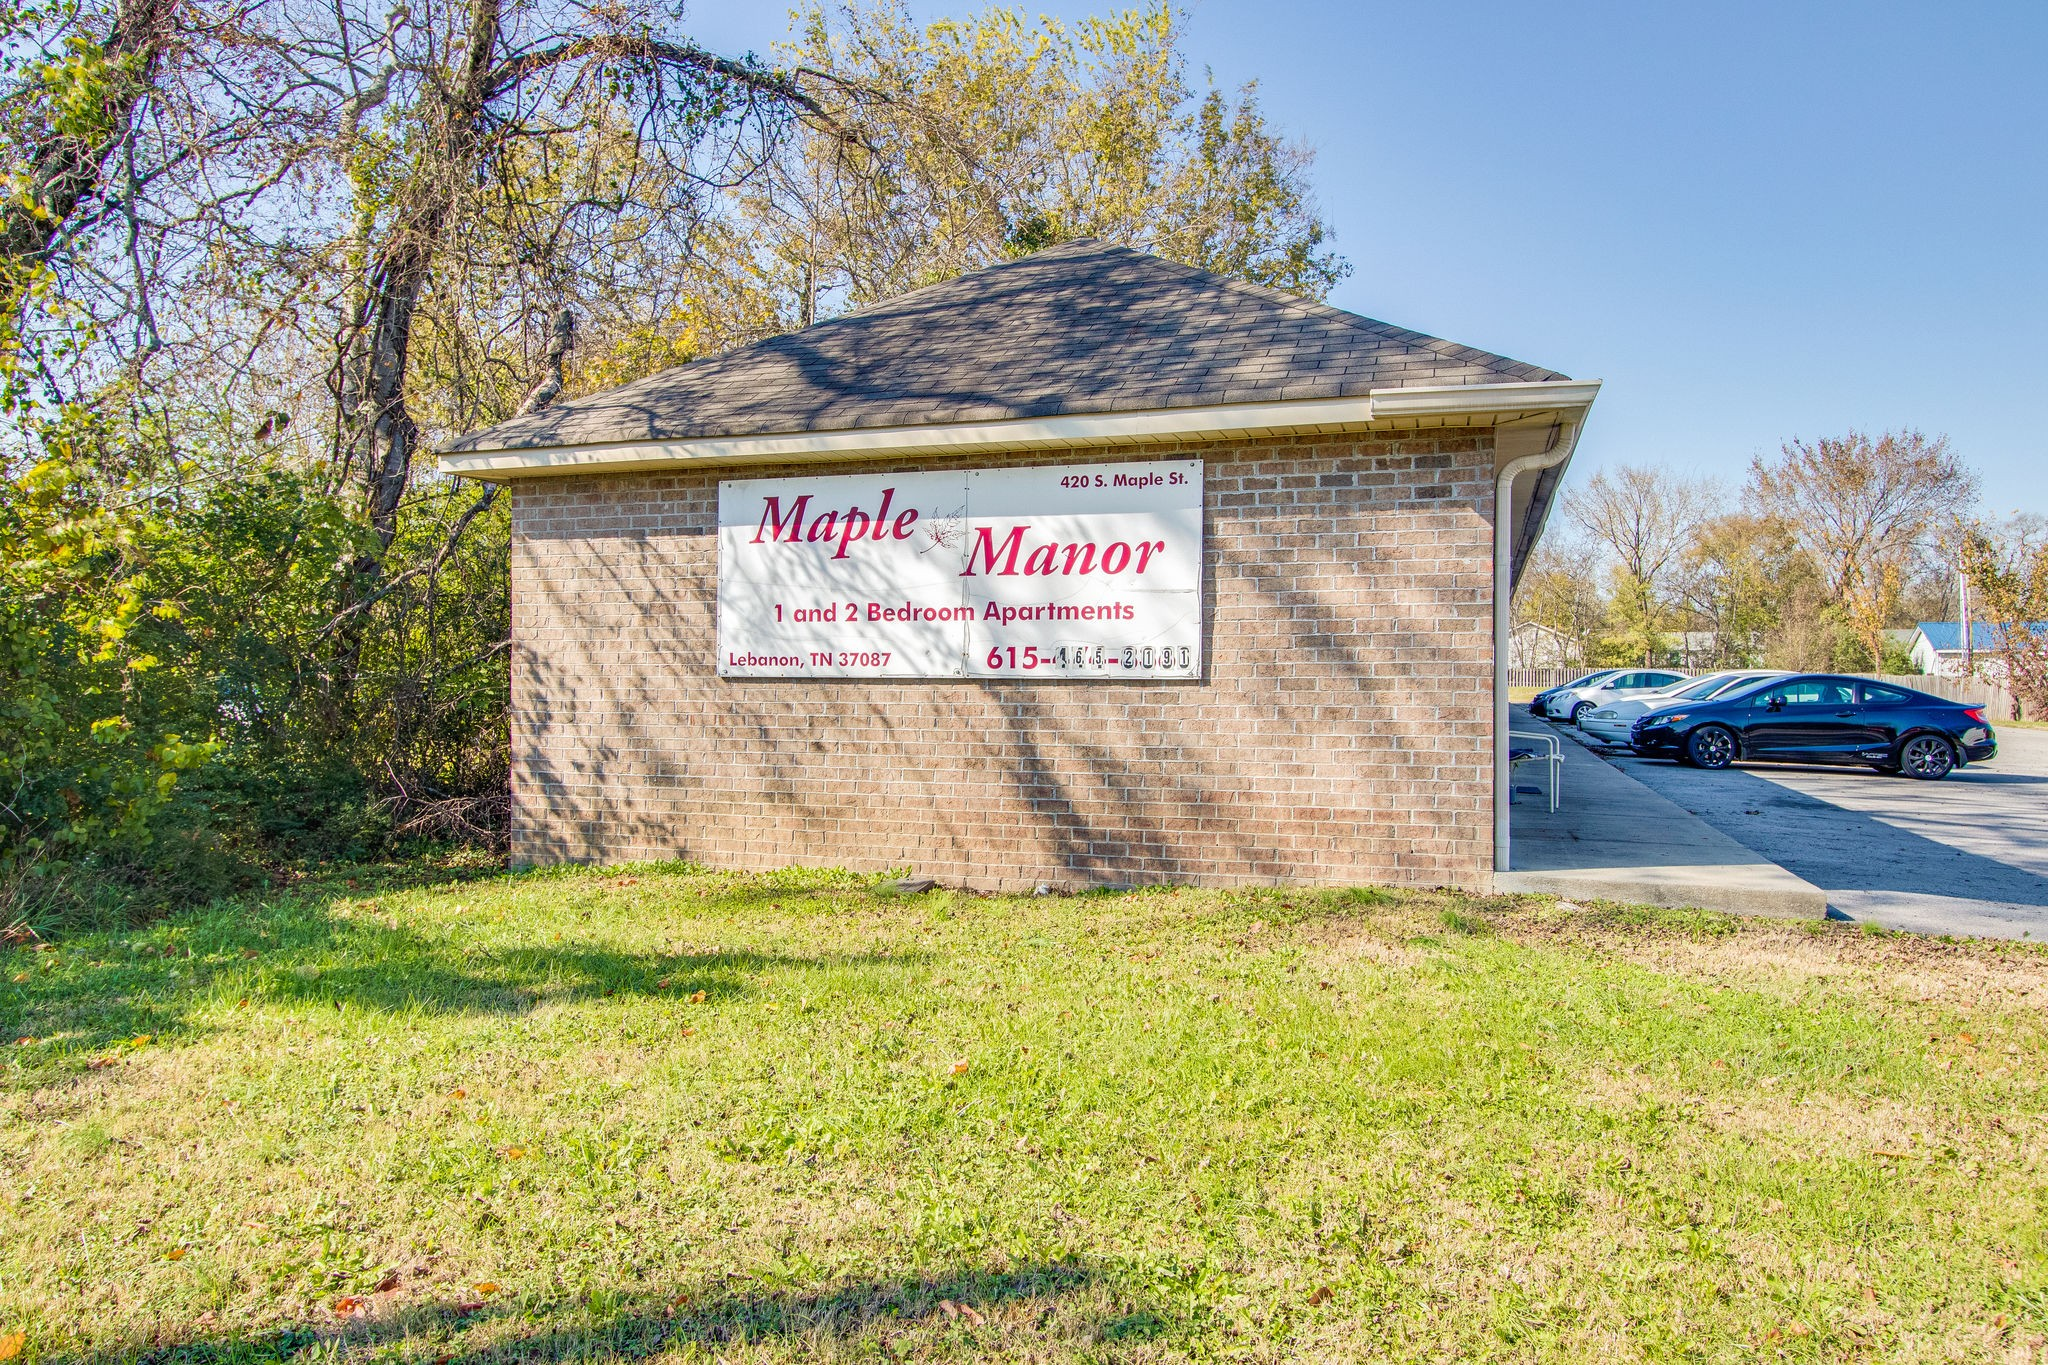 420 S Maple St, Lebanon, TN 37087 - Lebanon, TN real estate listing